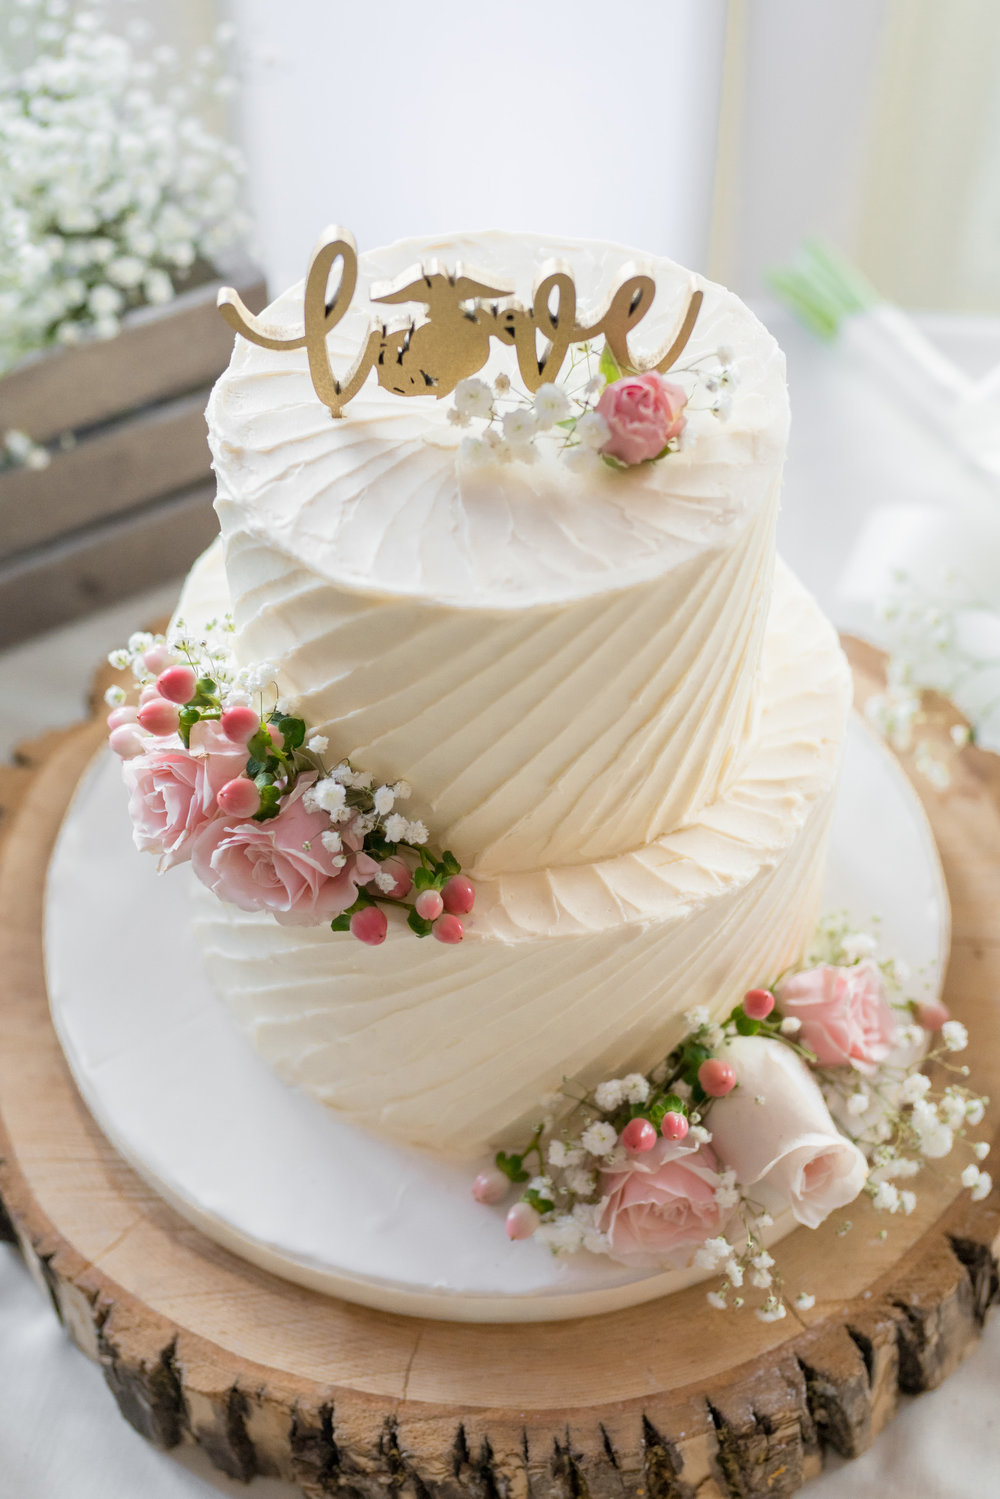 Wedding-cake-by-Gateau-in-Virginia-jessica-nazarova.jpg